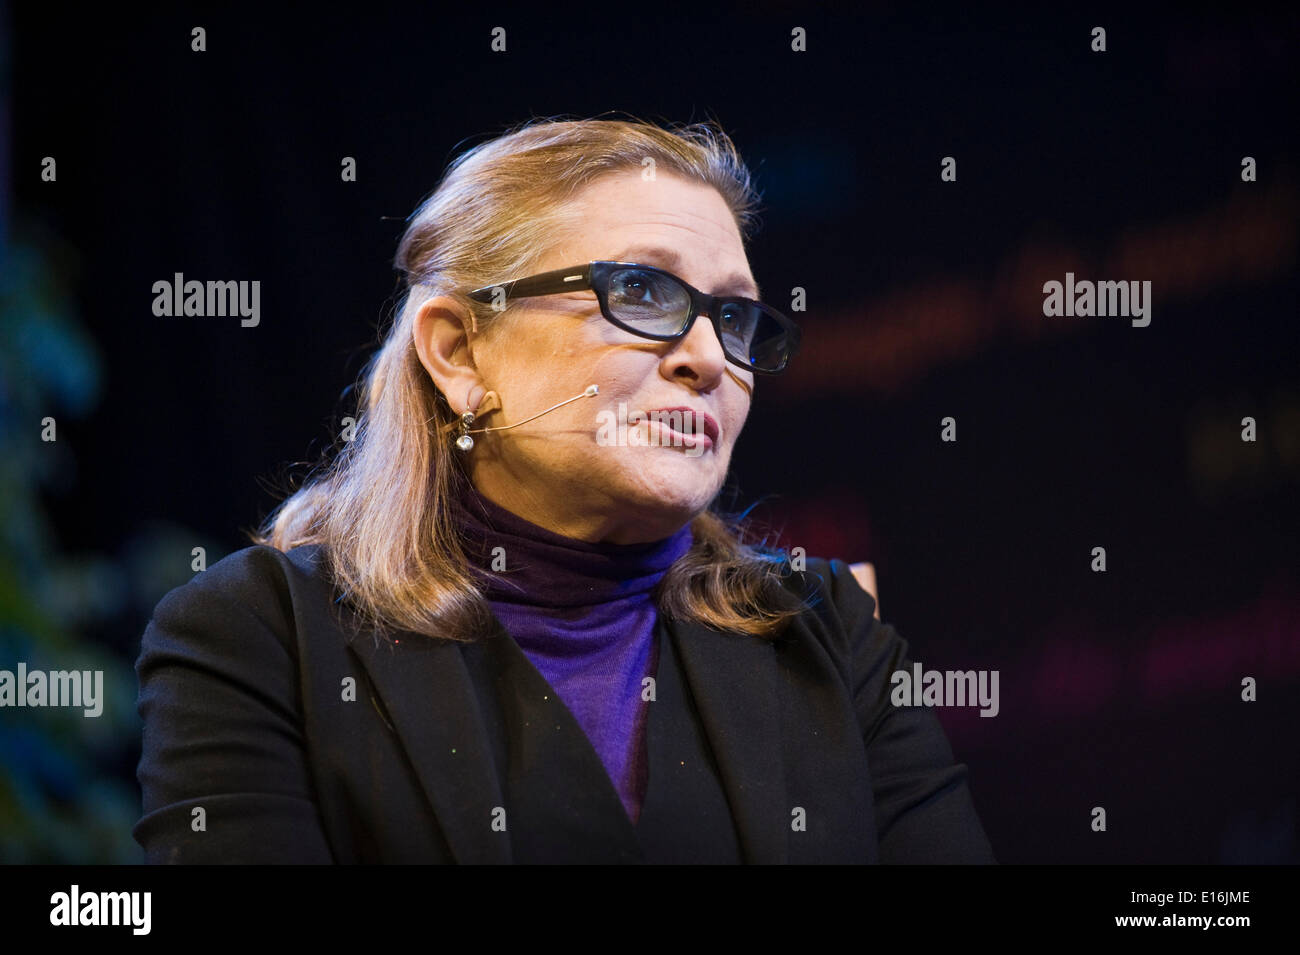 Carrie Fisher talking about her novels & film career at Hay Festival 2014. ©Jeff Morgan - Stock Image